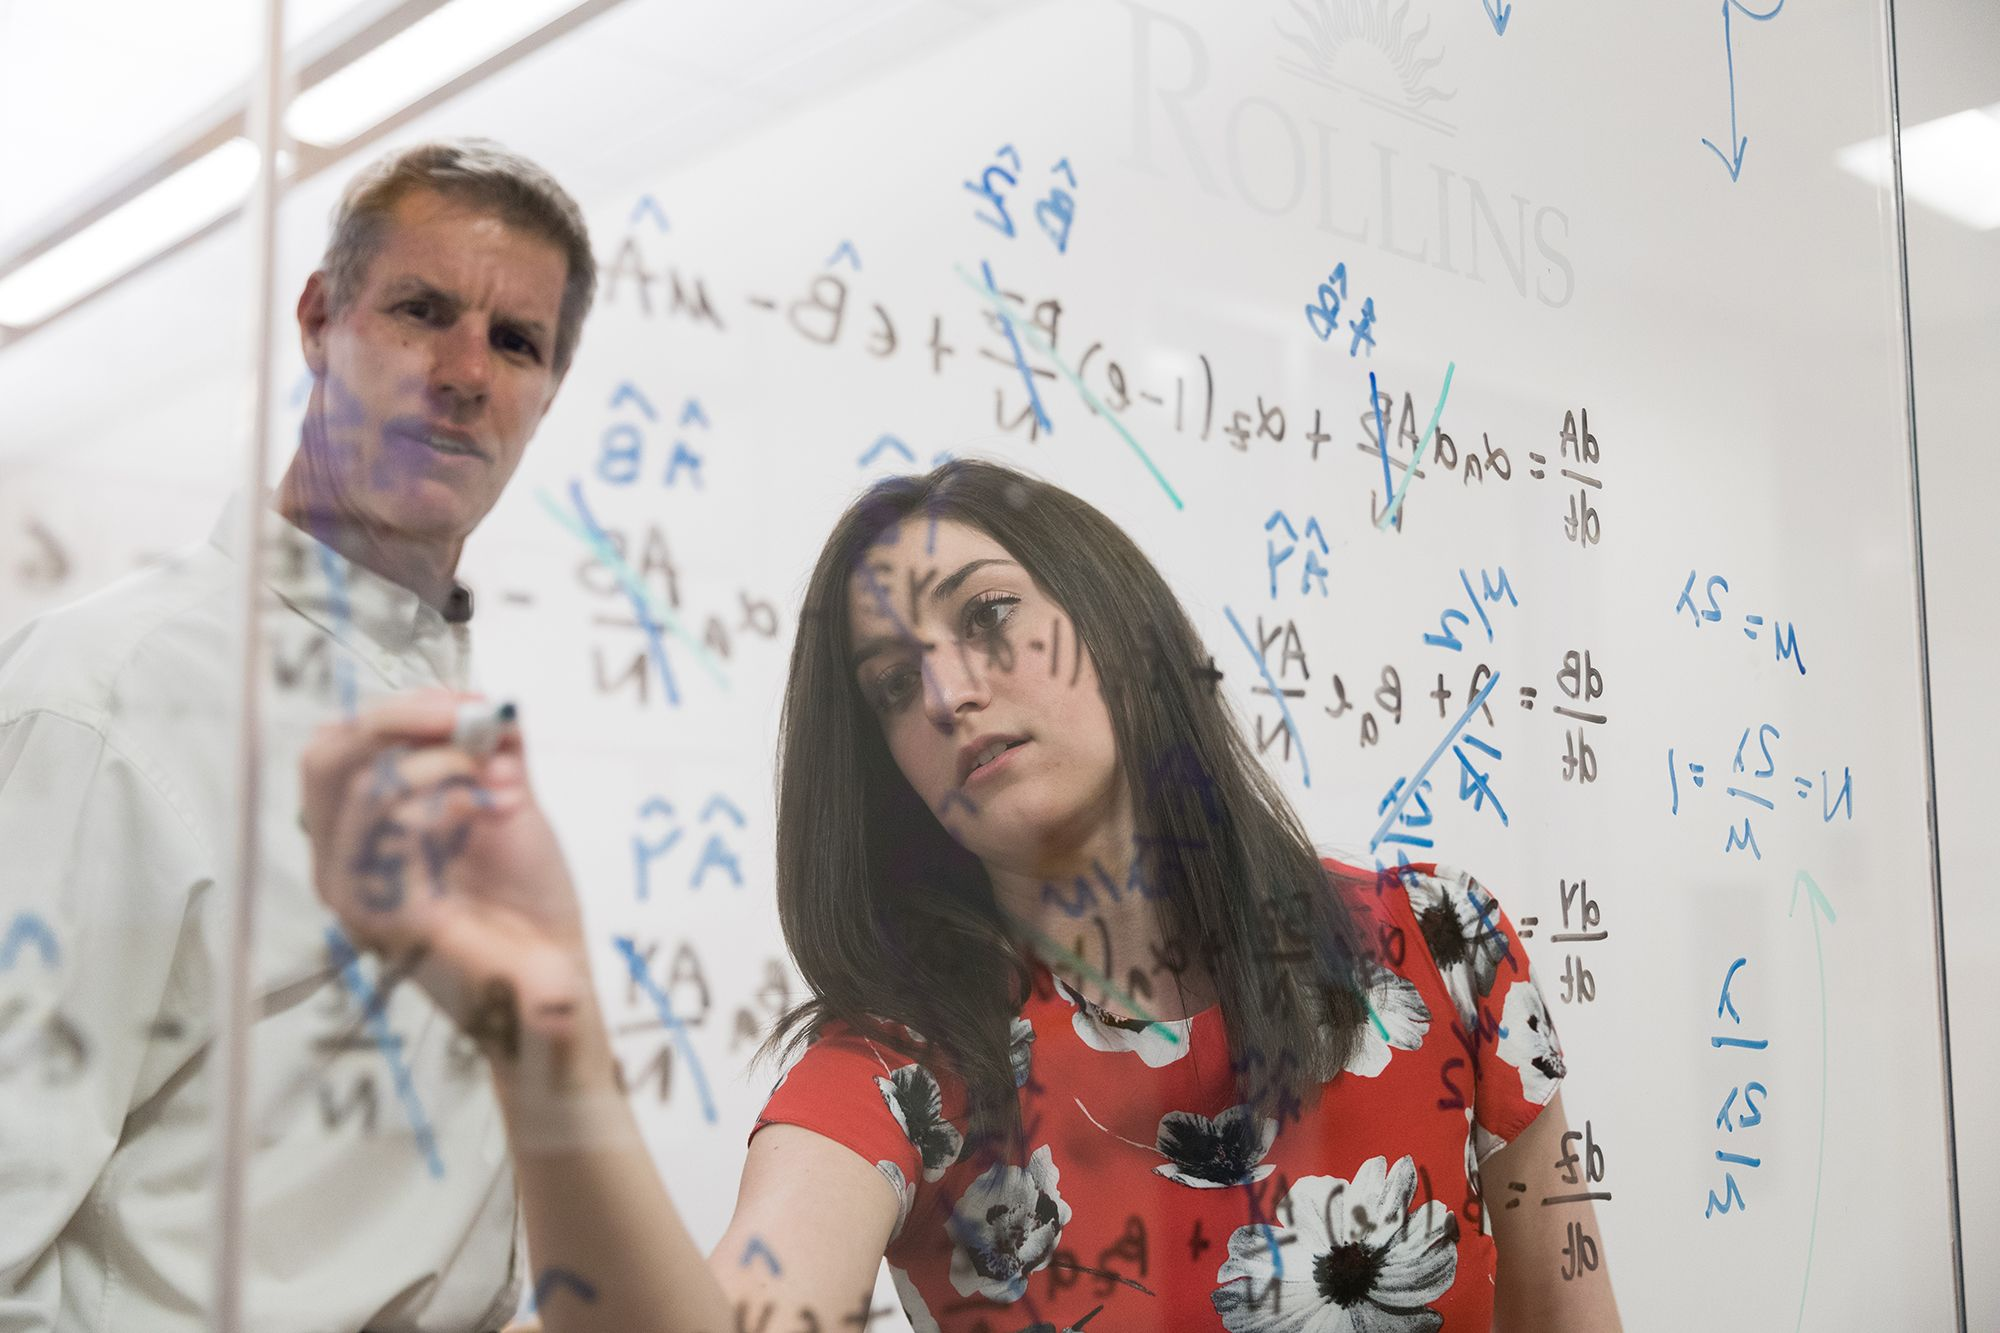 A mathematics college student writing a problem on a glass pane to show the professor.